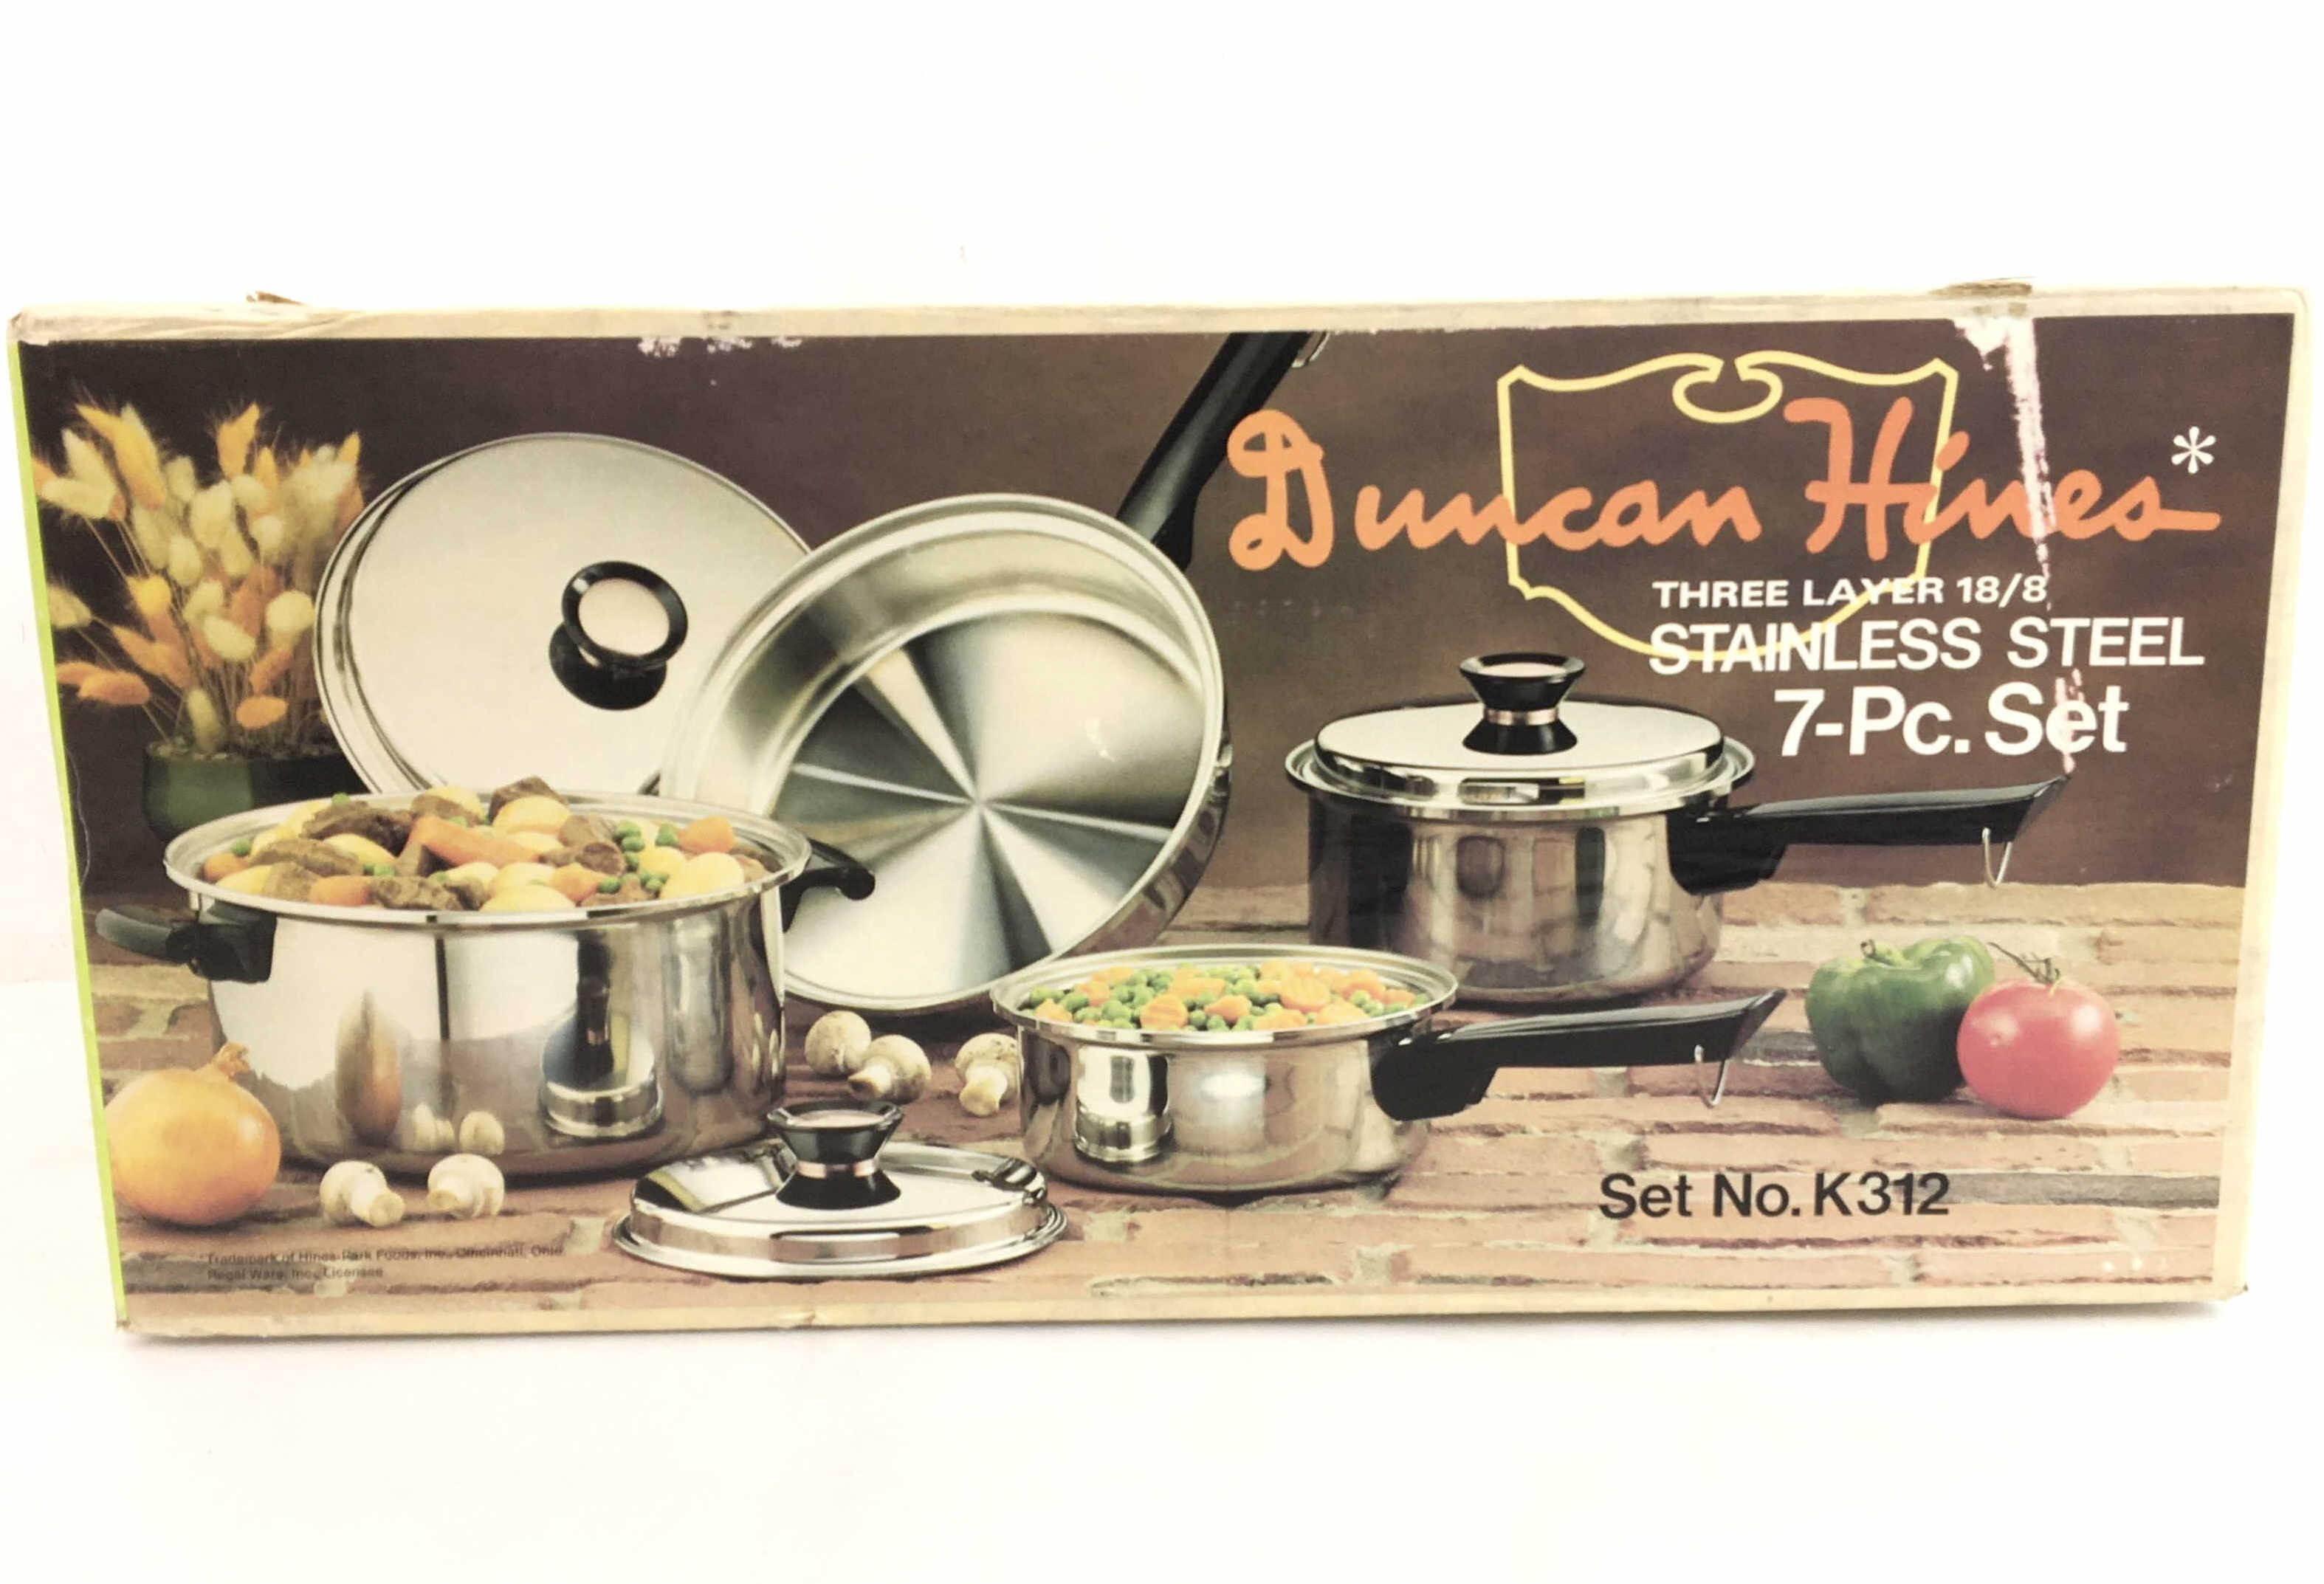 (7pc) Duncan Hines Three Layer 18/8 Stainless